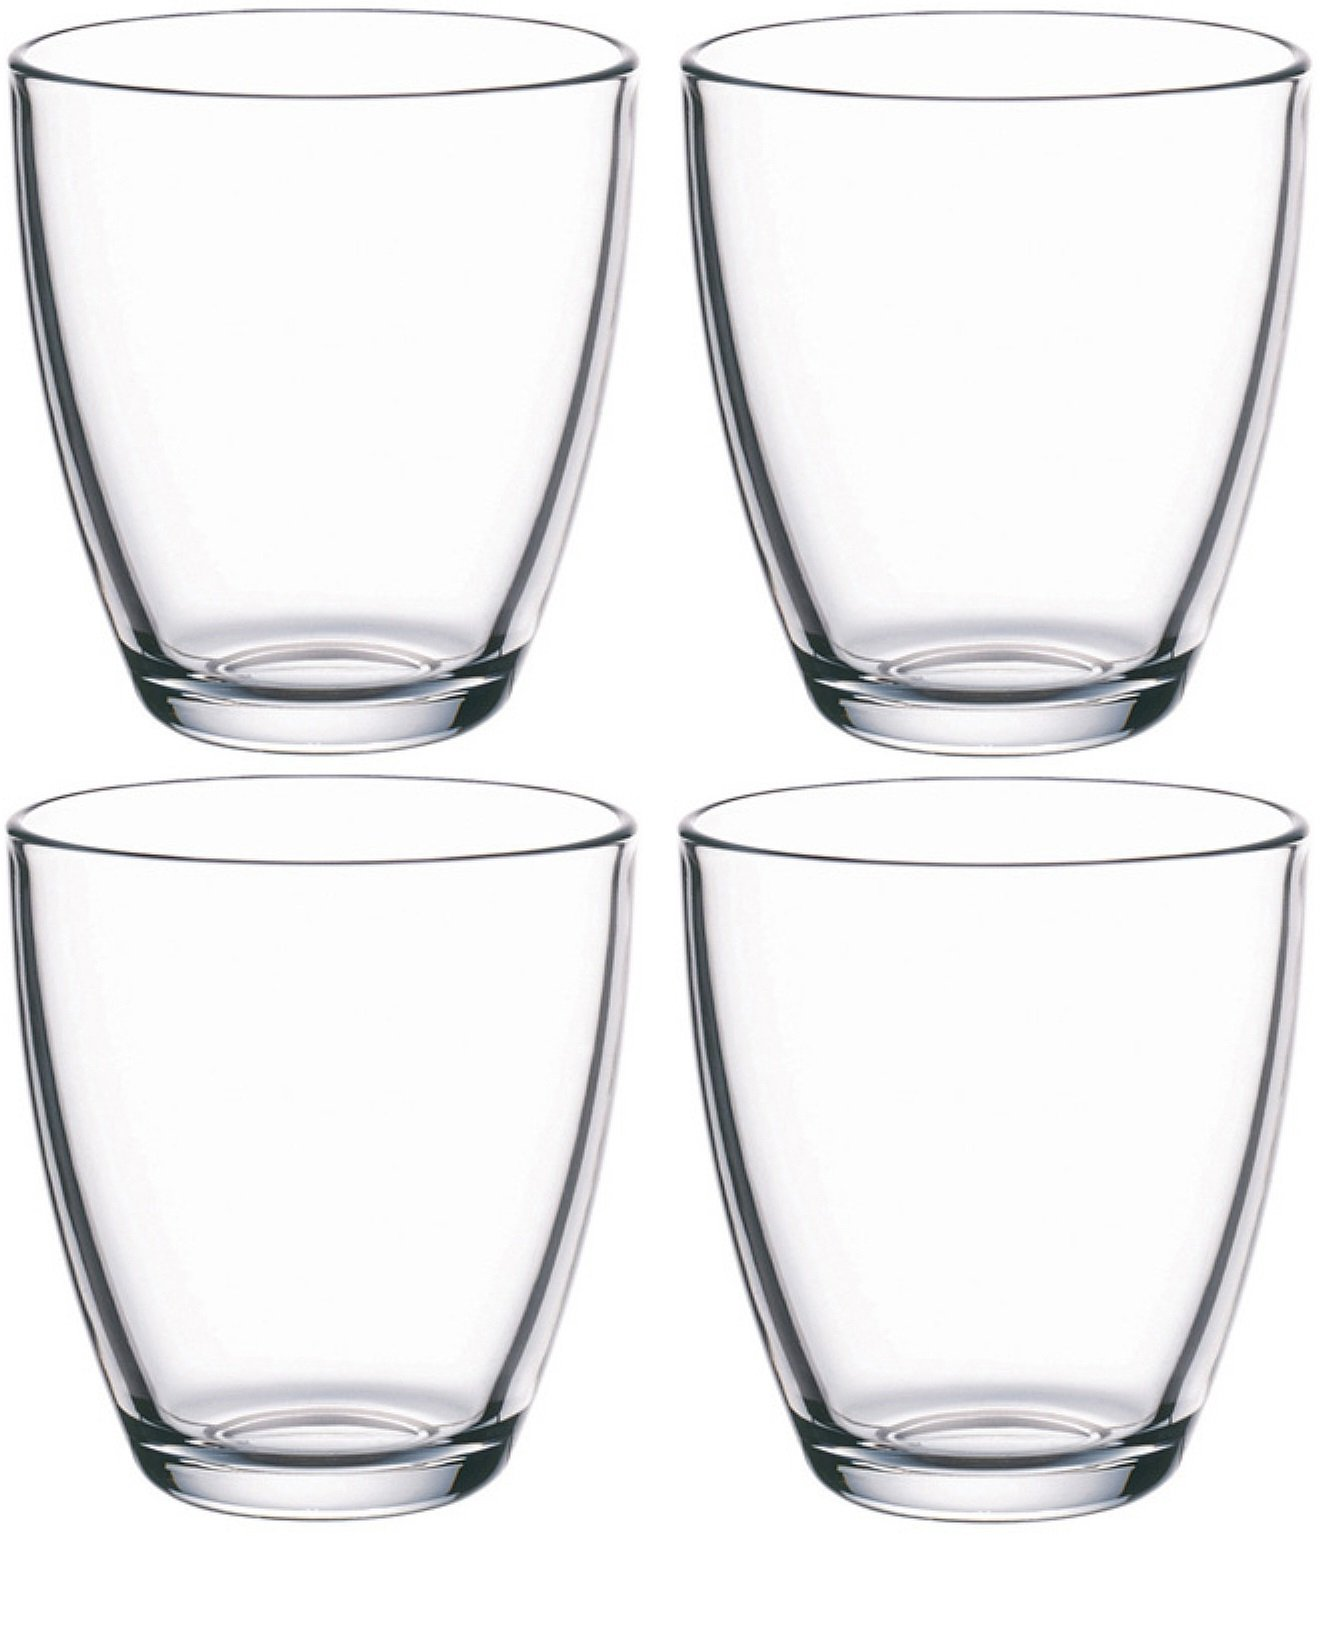 Circleware 44537 Smooth Whiskey, Set of 4, Kitchen Entertainment Dinnerware Drinking Glasses Glassware for Water, Juice, Beer and Bar Liquor Dining Decor Beverage Cups Gifts, 13 oz, Smooth4pc